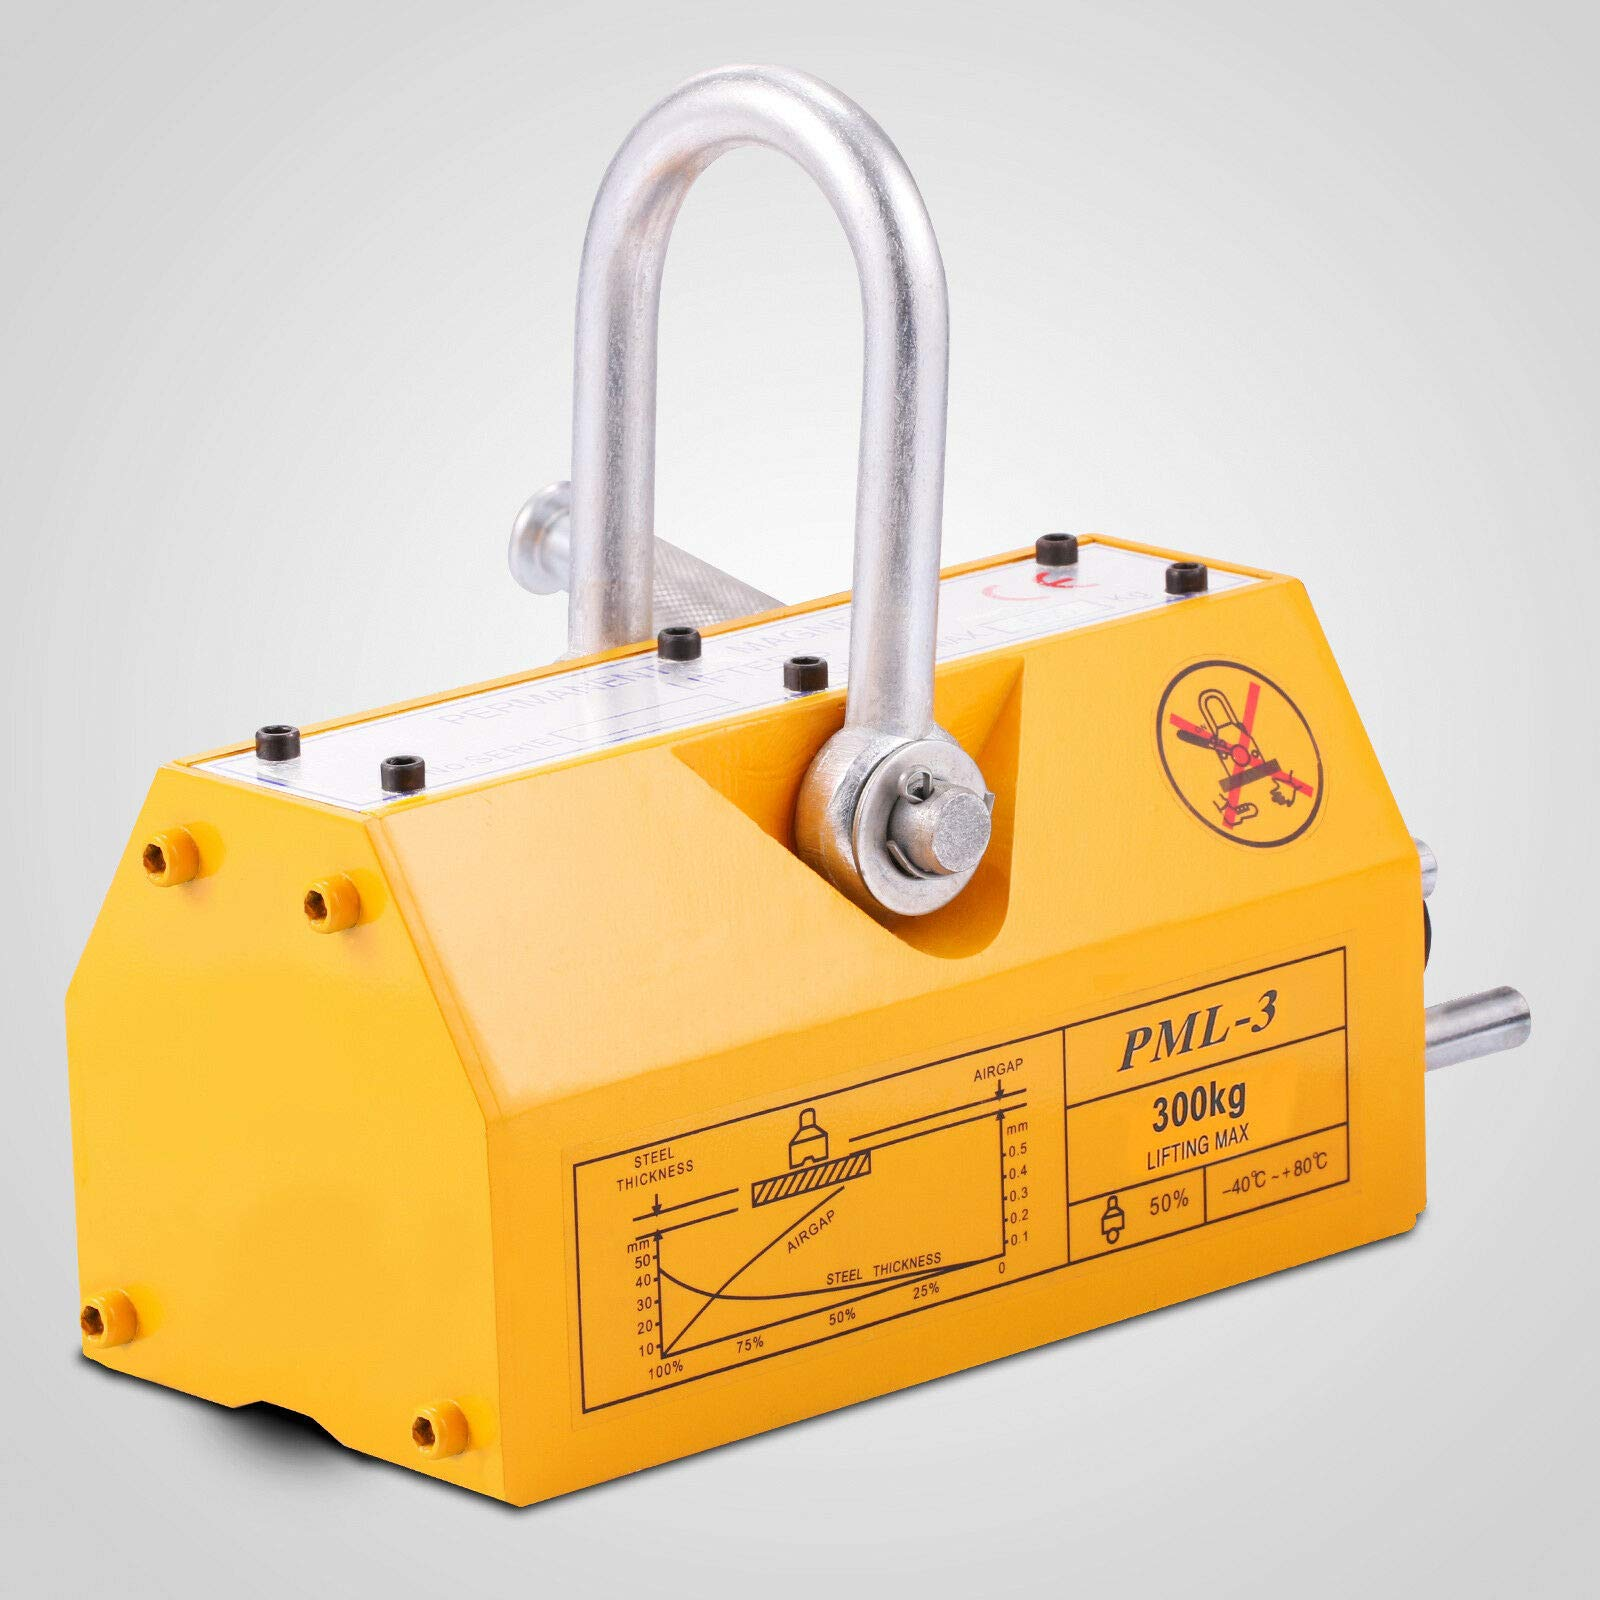 Mandycng Heavy Duty Non-Electric 660lb 300kg Steel Lifting Magnet Magnetic Power Lifter Hoist Crane Recycle Mold Machinery Industry Steelwork Factory Steel Warehouse Magnetic Lifter